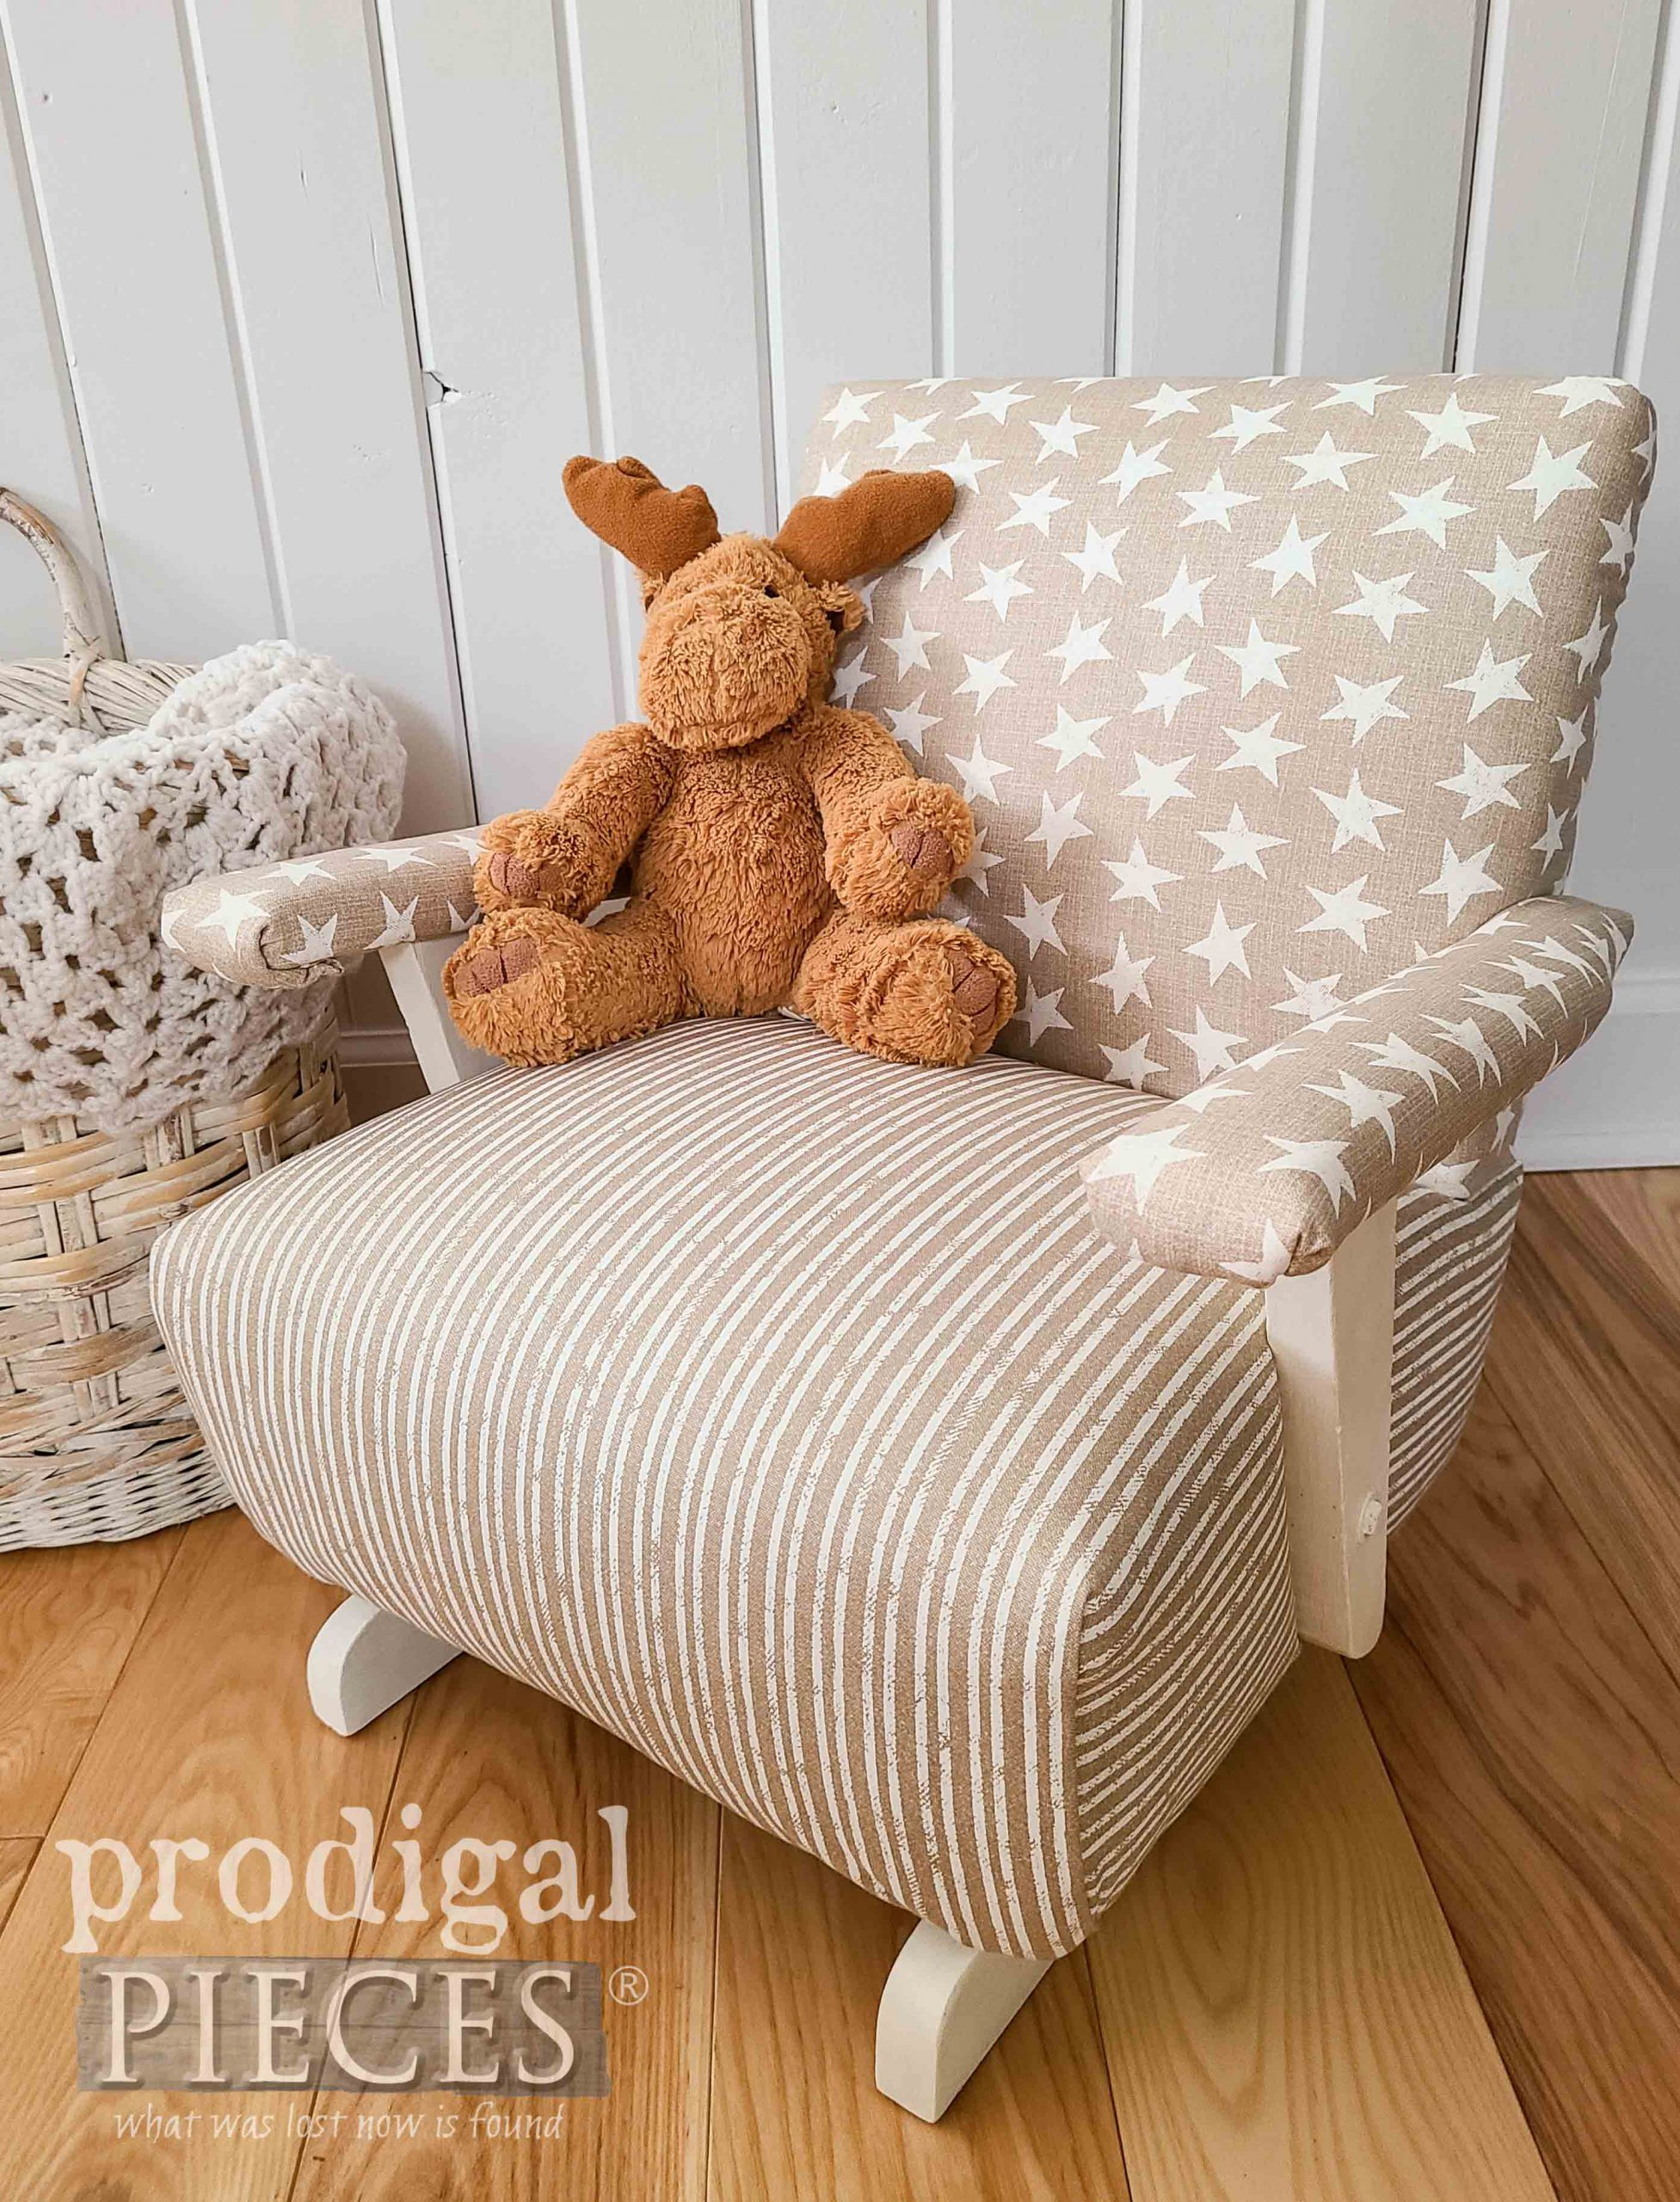 Upholstered Kids Rocker with Modern Farmhouse Style by Prodigal Pieces | prodigalpieces.com #prodigalpieces #diy #home #homedecor #furniture #vintage